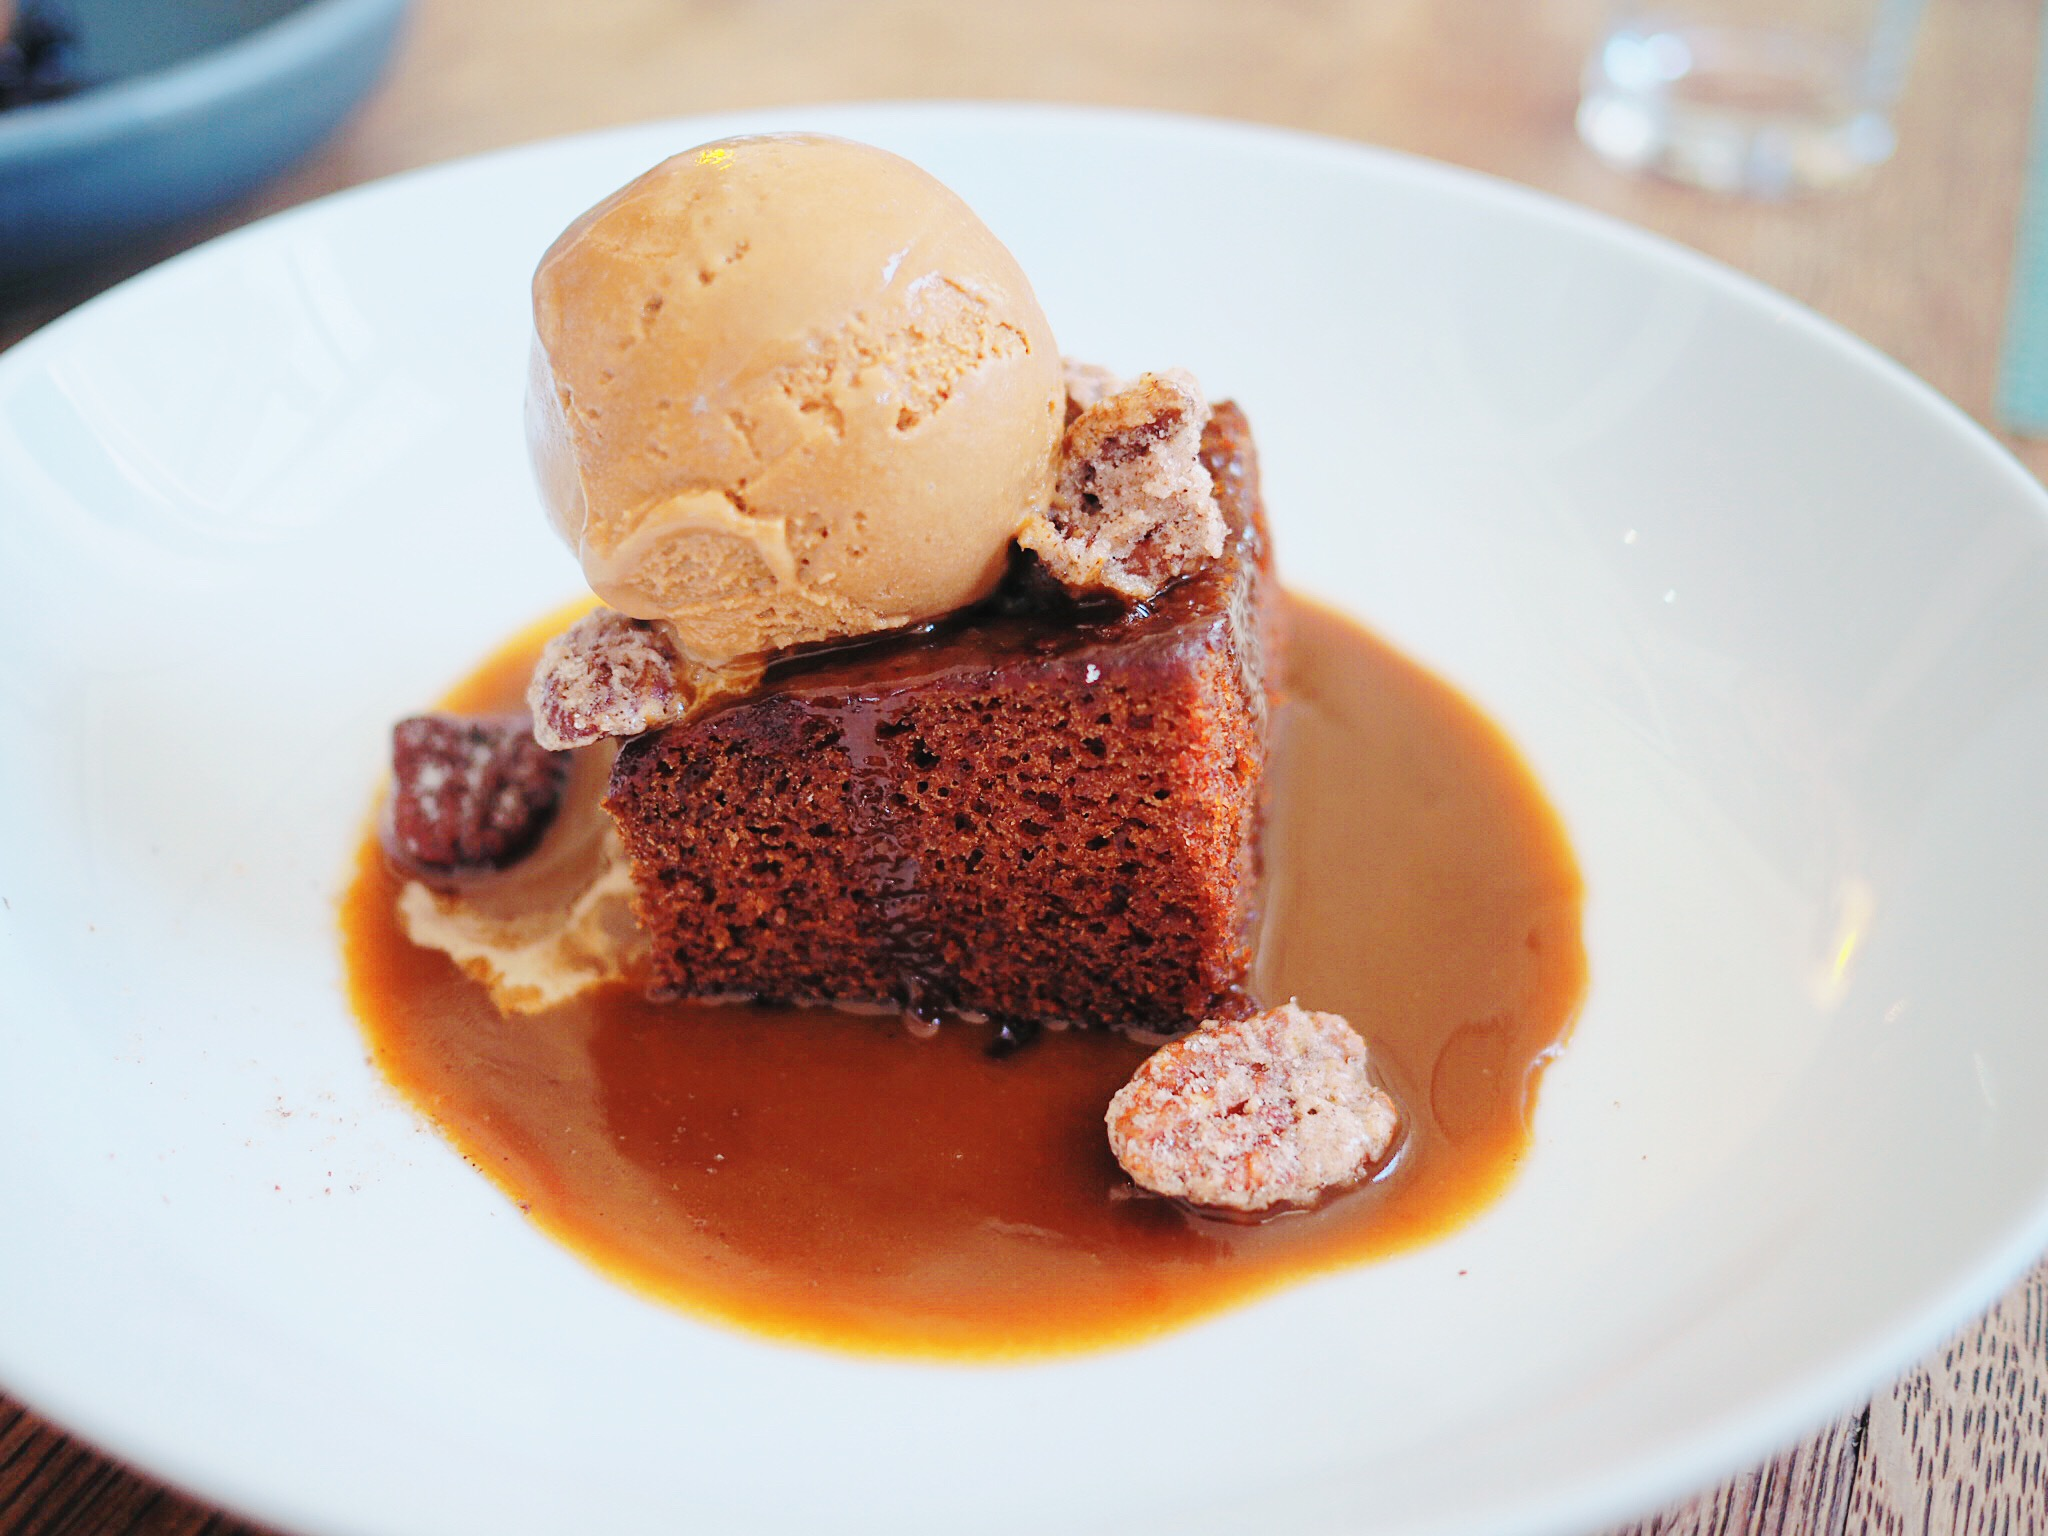 The Sun Sticky toffee pudding